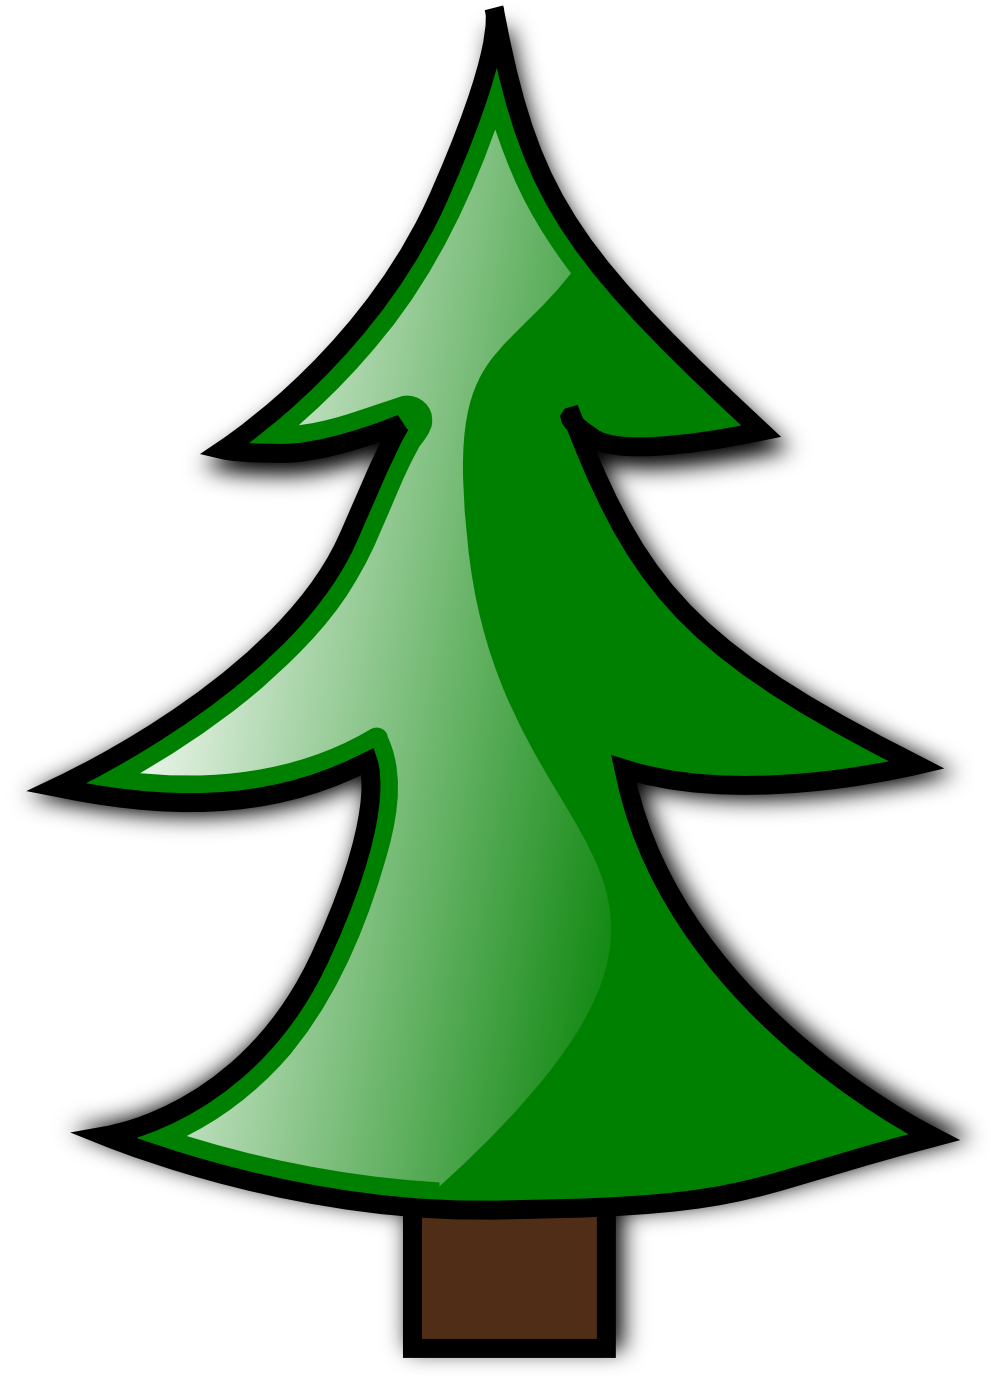 Christmas Tree Clip Art Free | Clipart Panda - Free Clipart Images